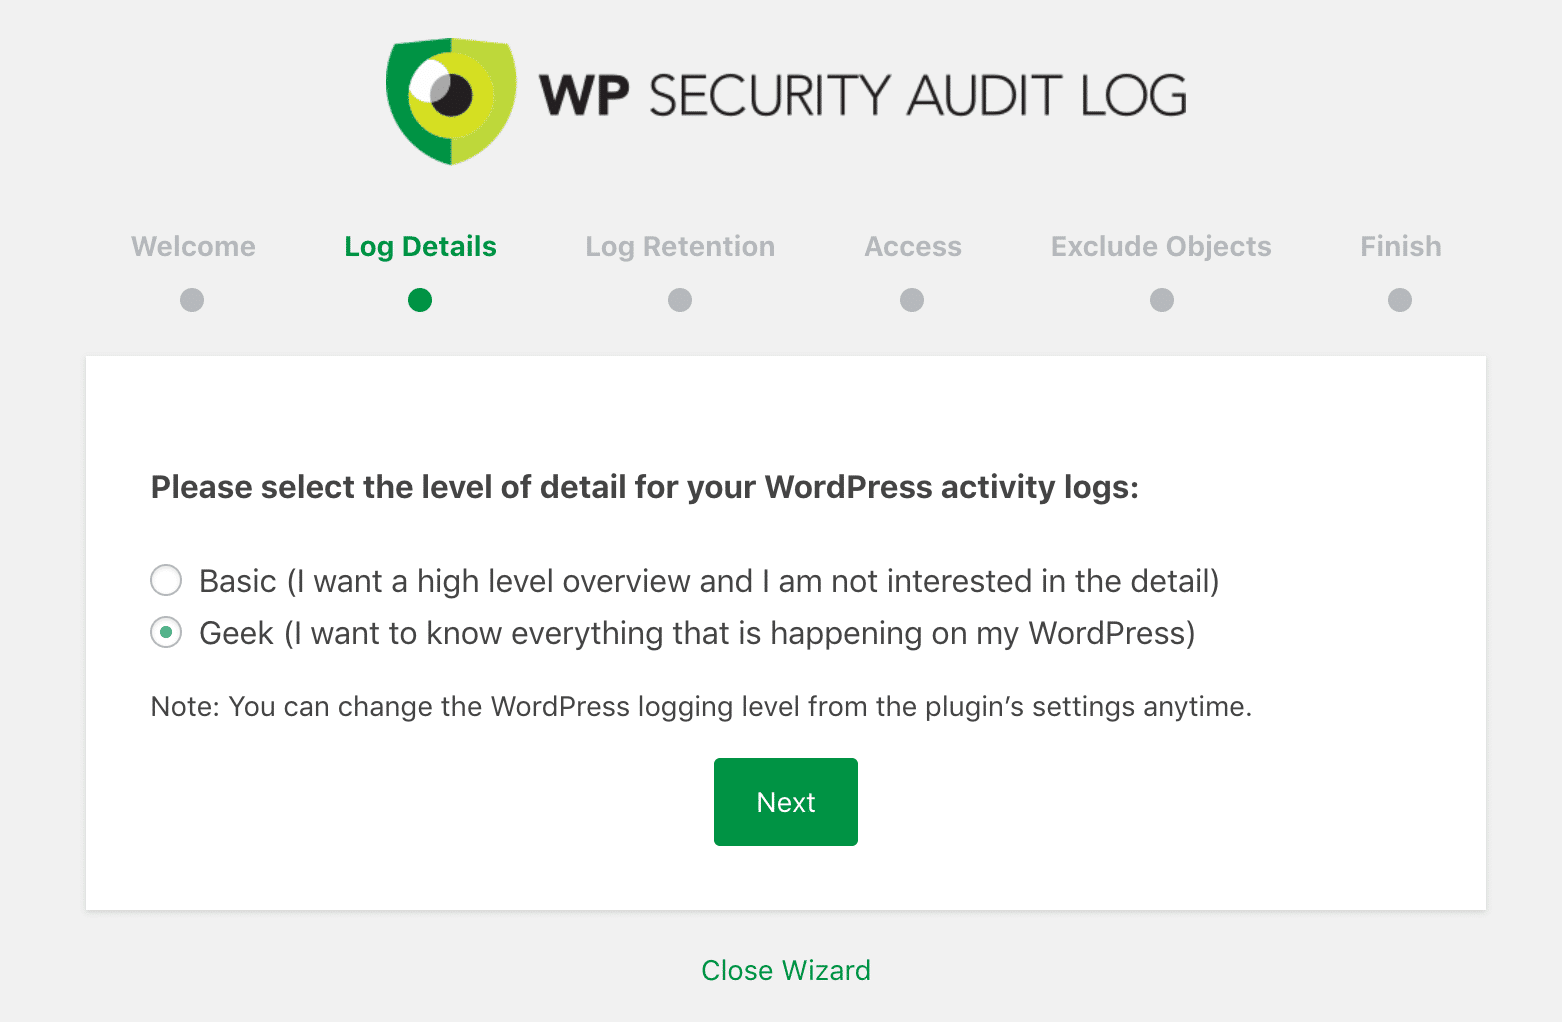 WP Security Audit Log nerd instellingen